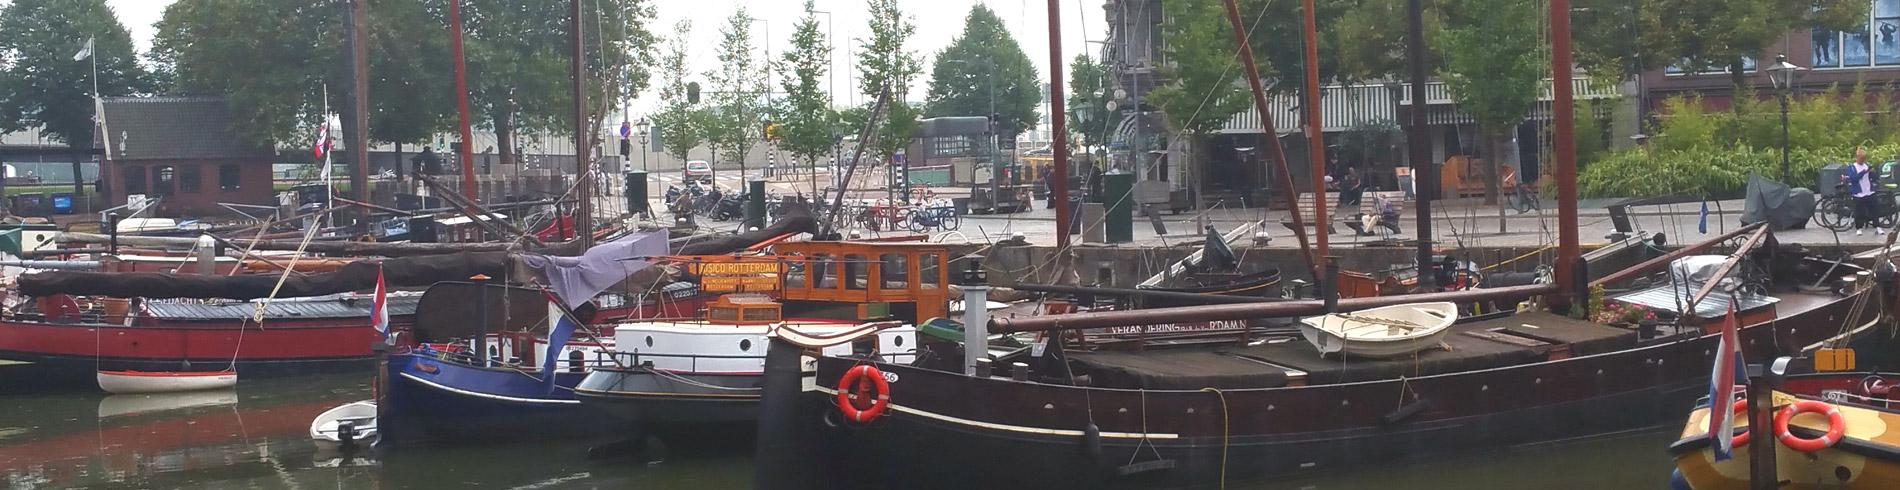 Boats on the water in Rotterdam